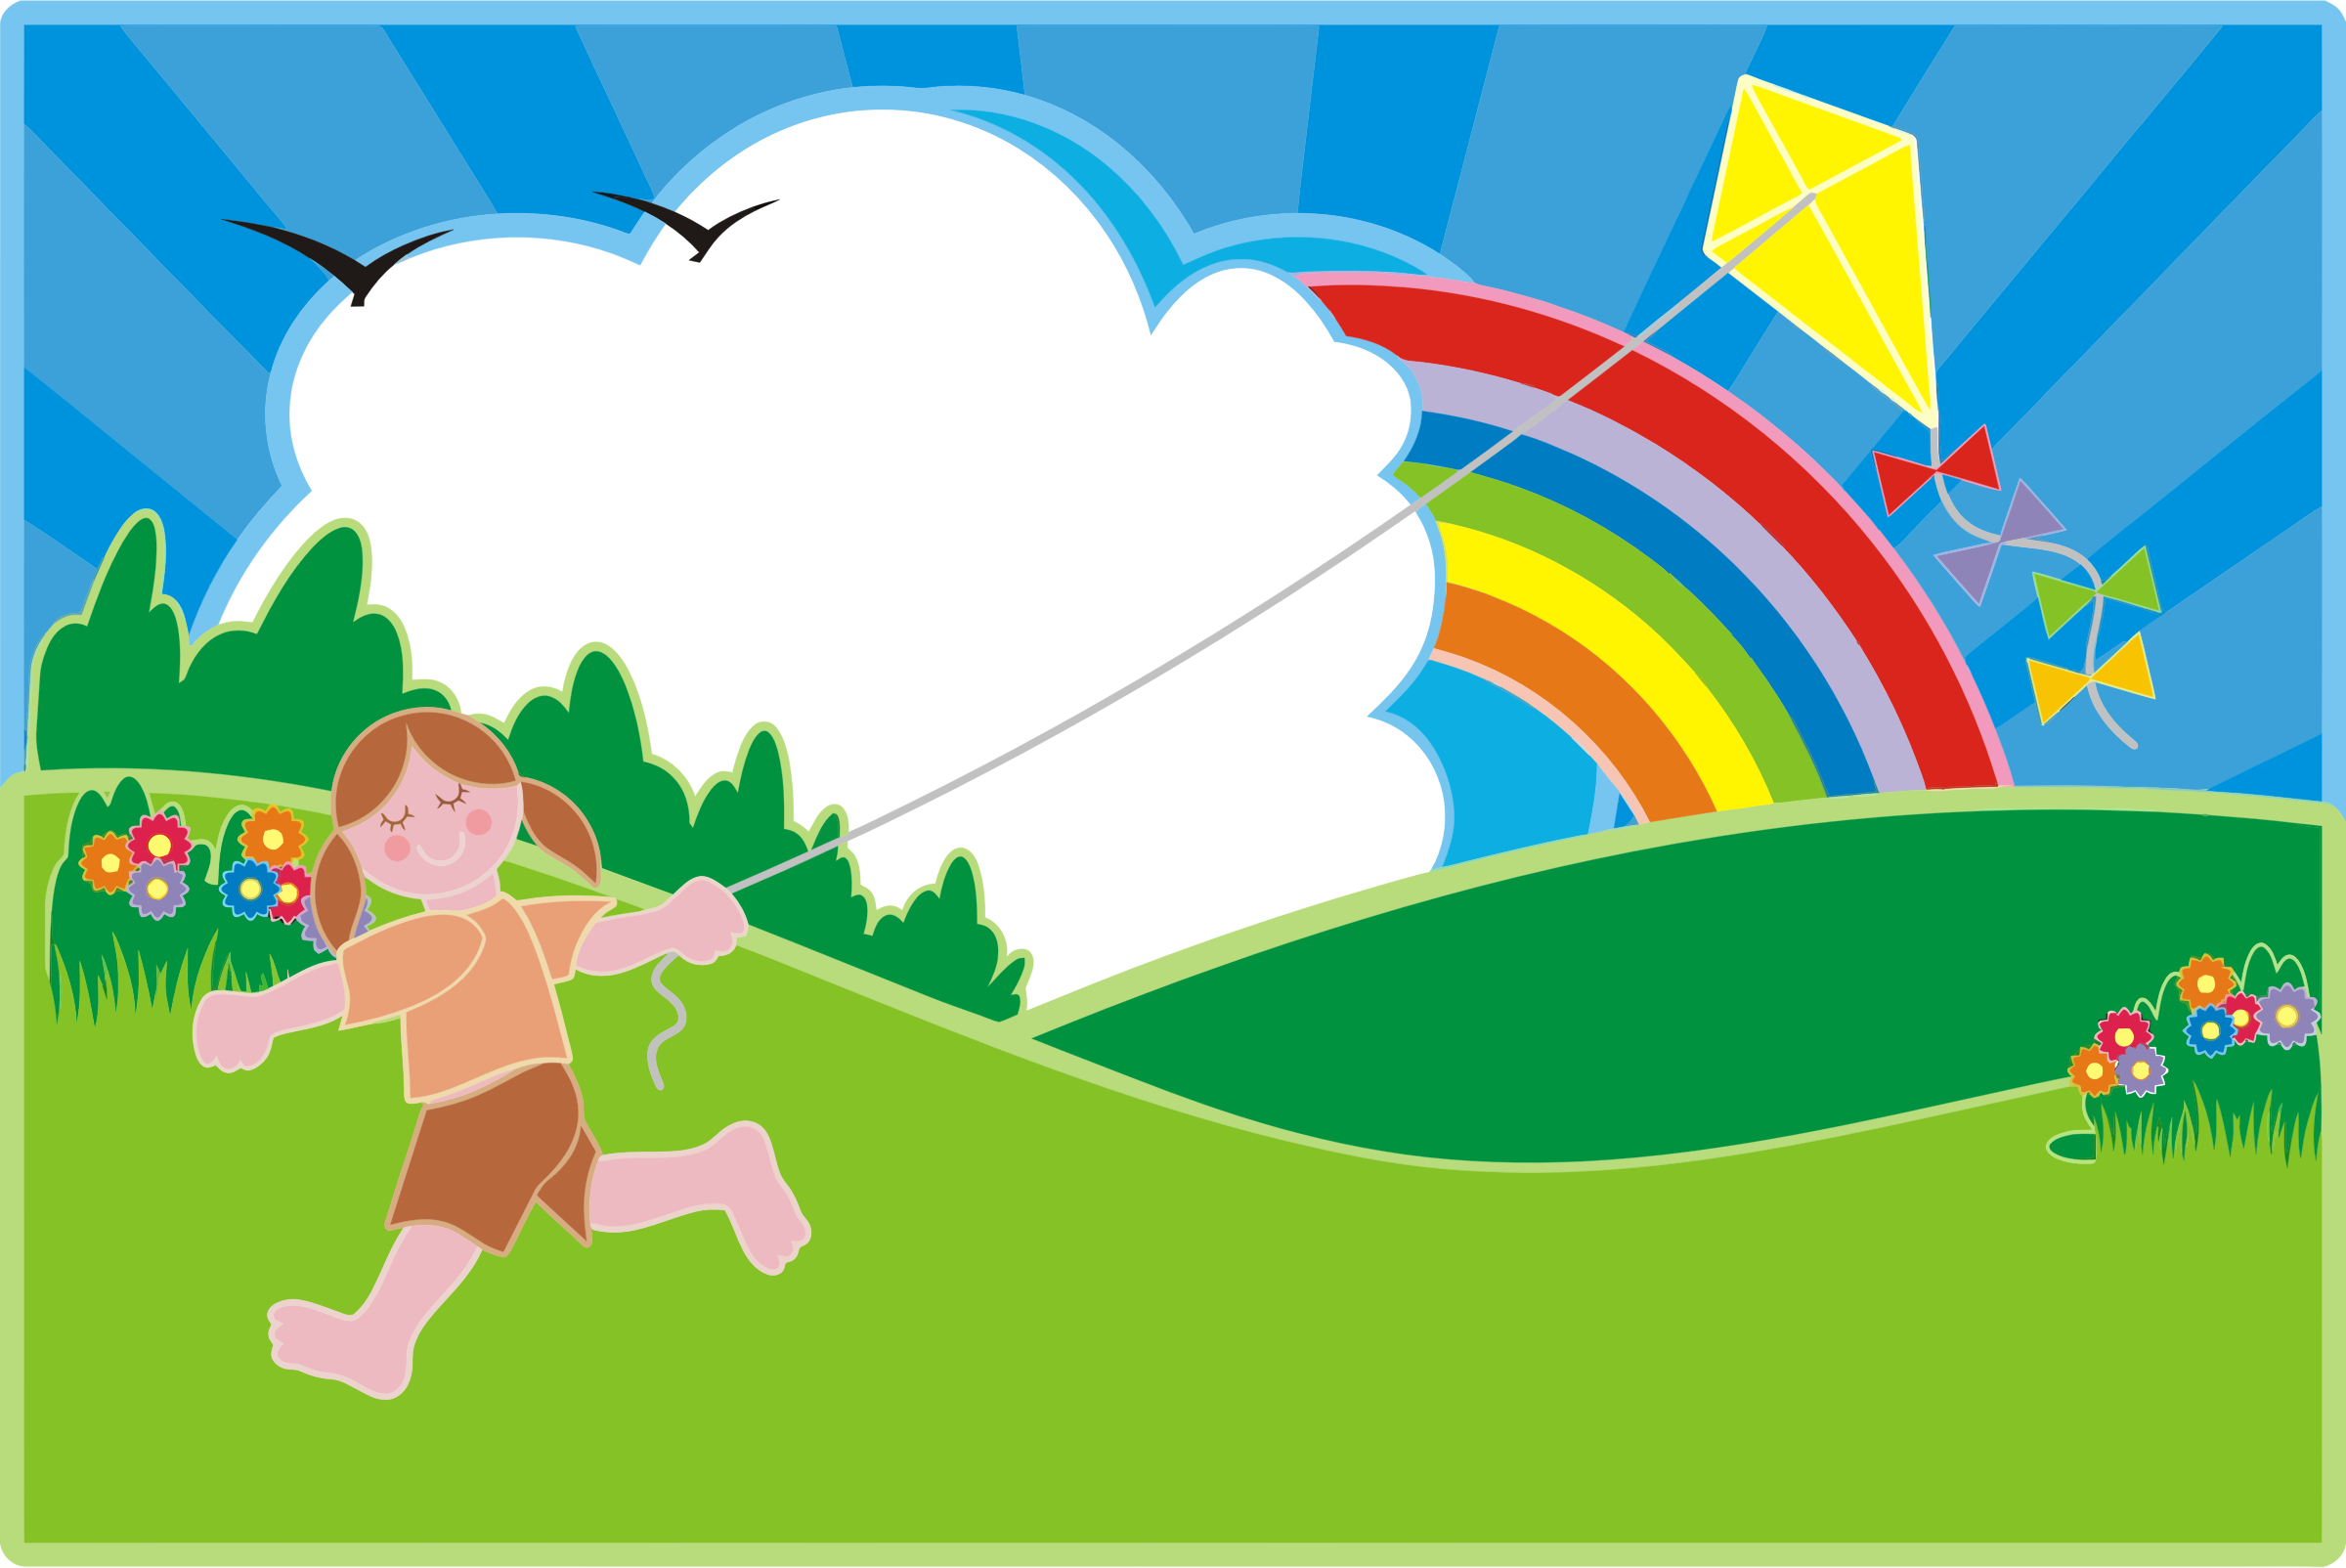 This free Icons Png design of Girl Flying Kite In Colorful Landscape PlusPng.com  - Kite PNG HD Images